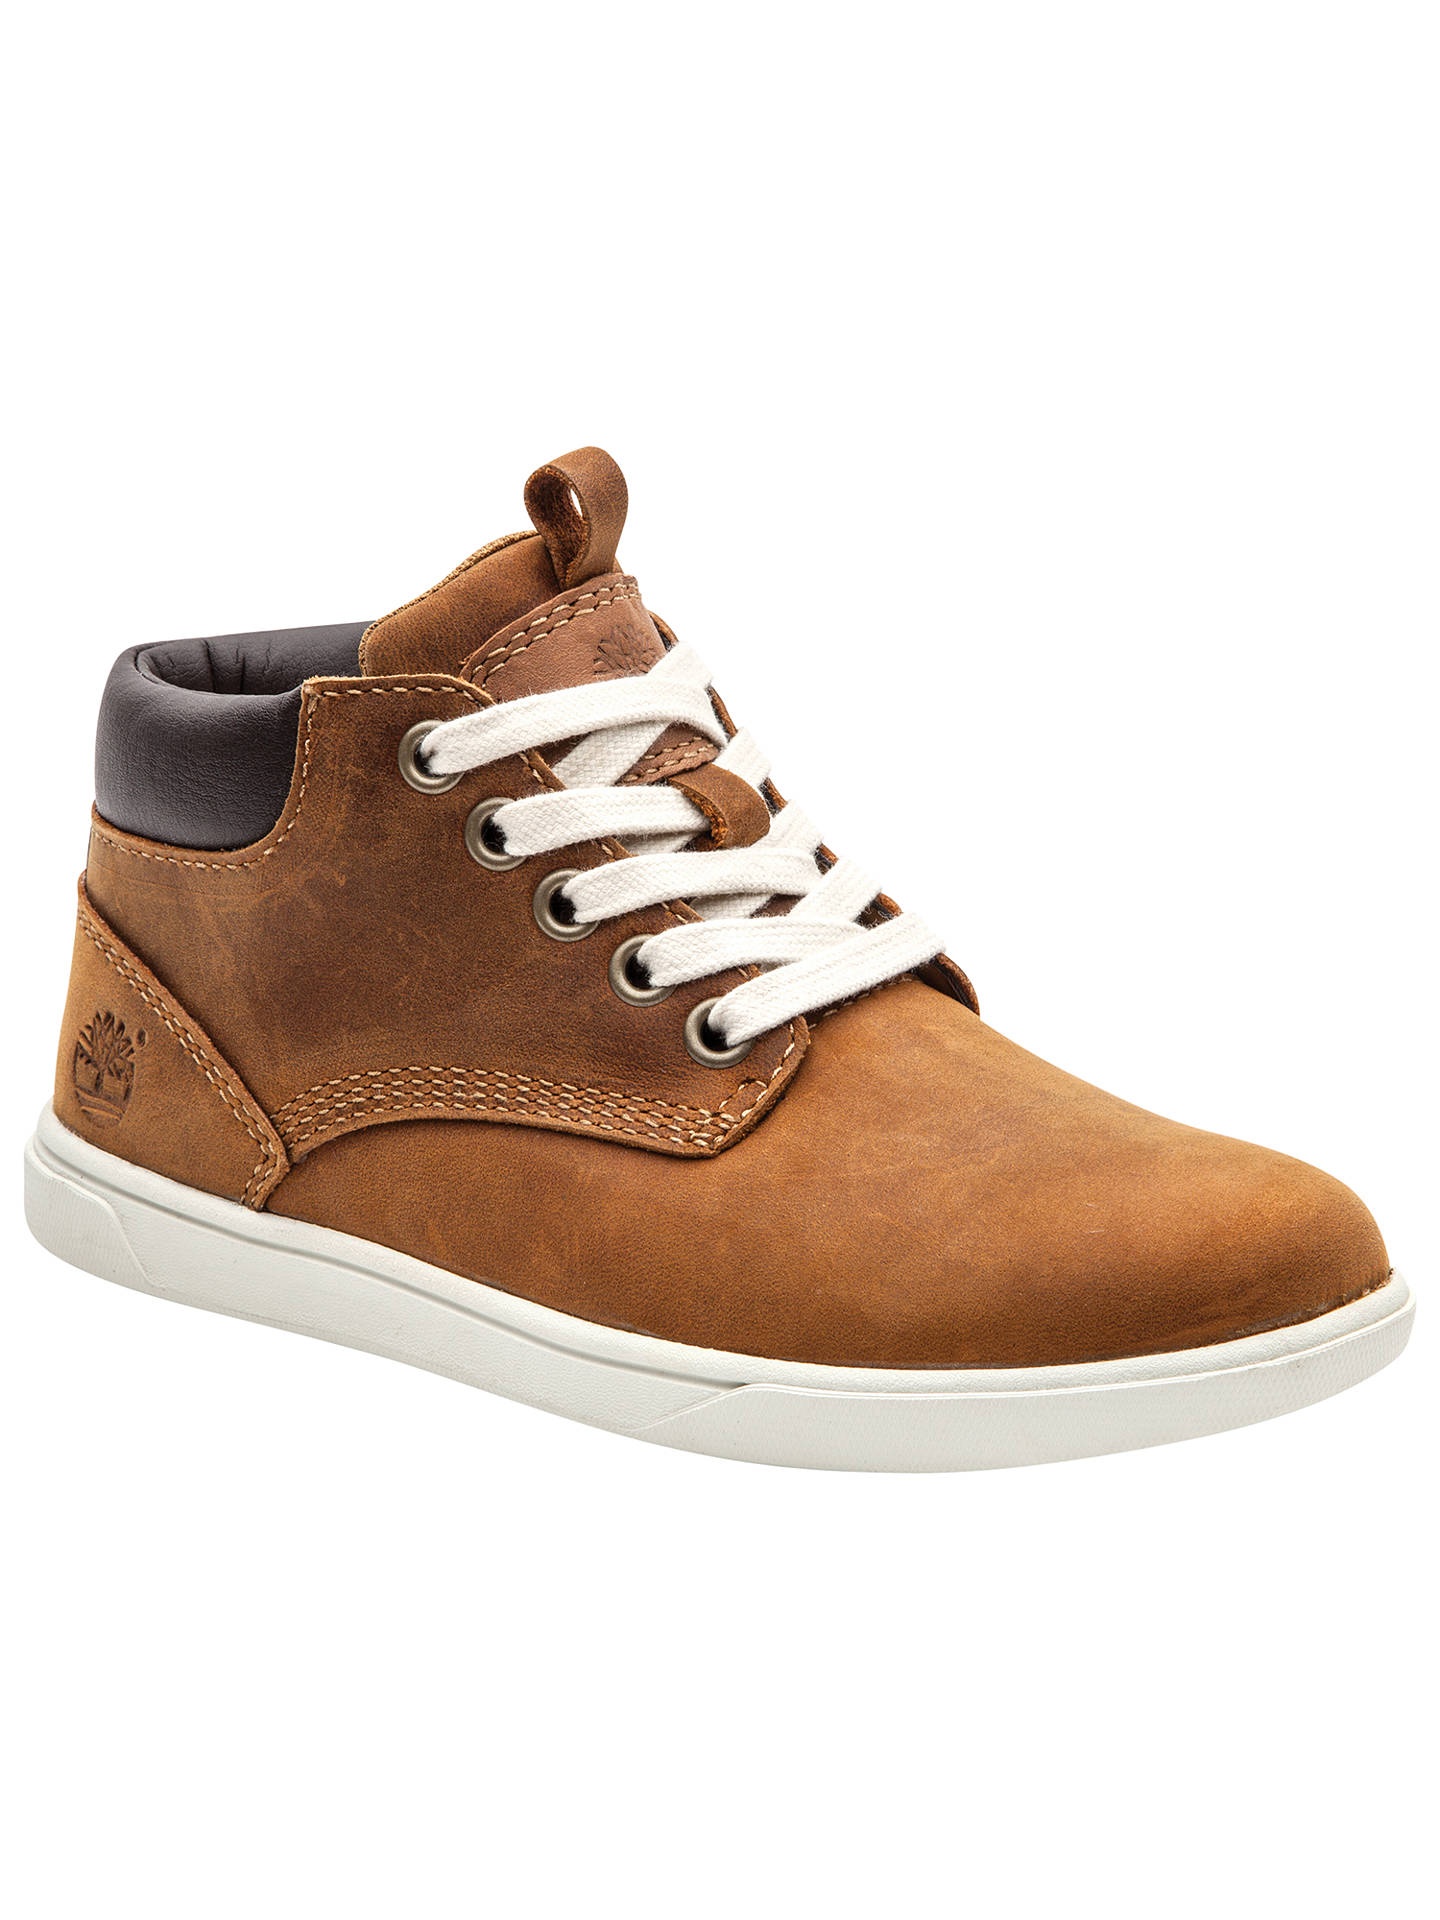 Timberland Groveton Leather Chukka Boots, Brown Ginger at